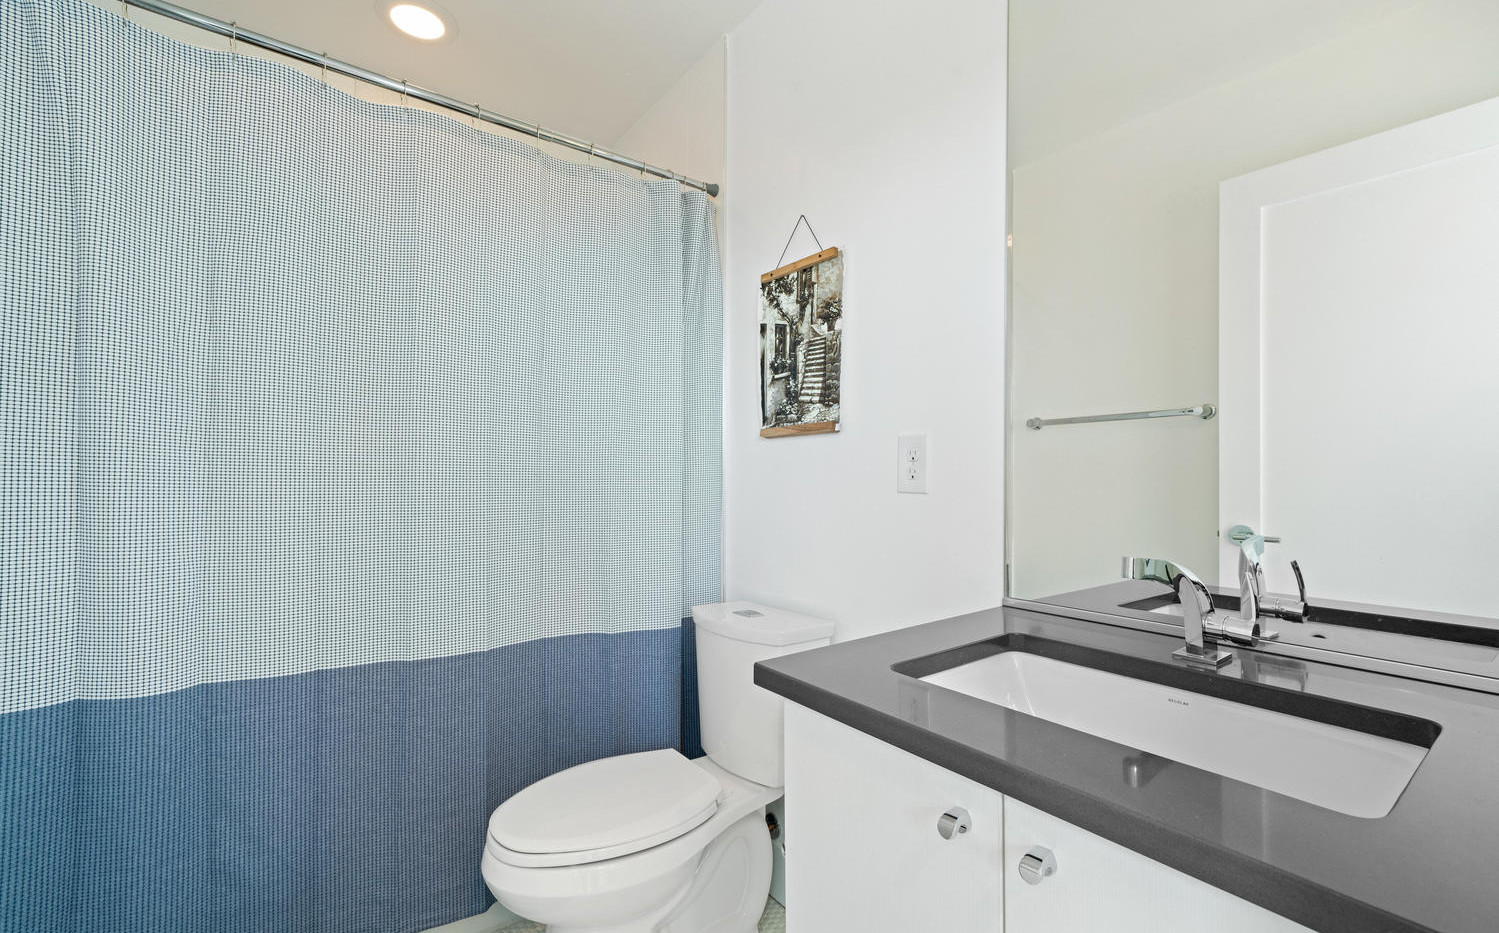 3424 W 18th Avenue-large-041-034-Bathroo